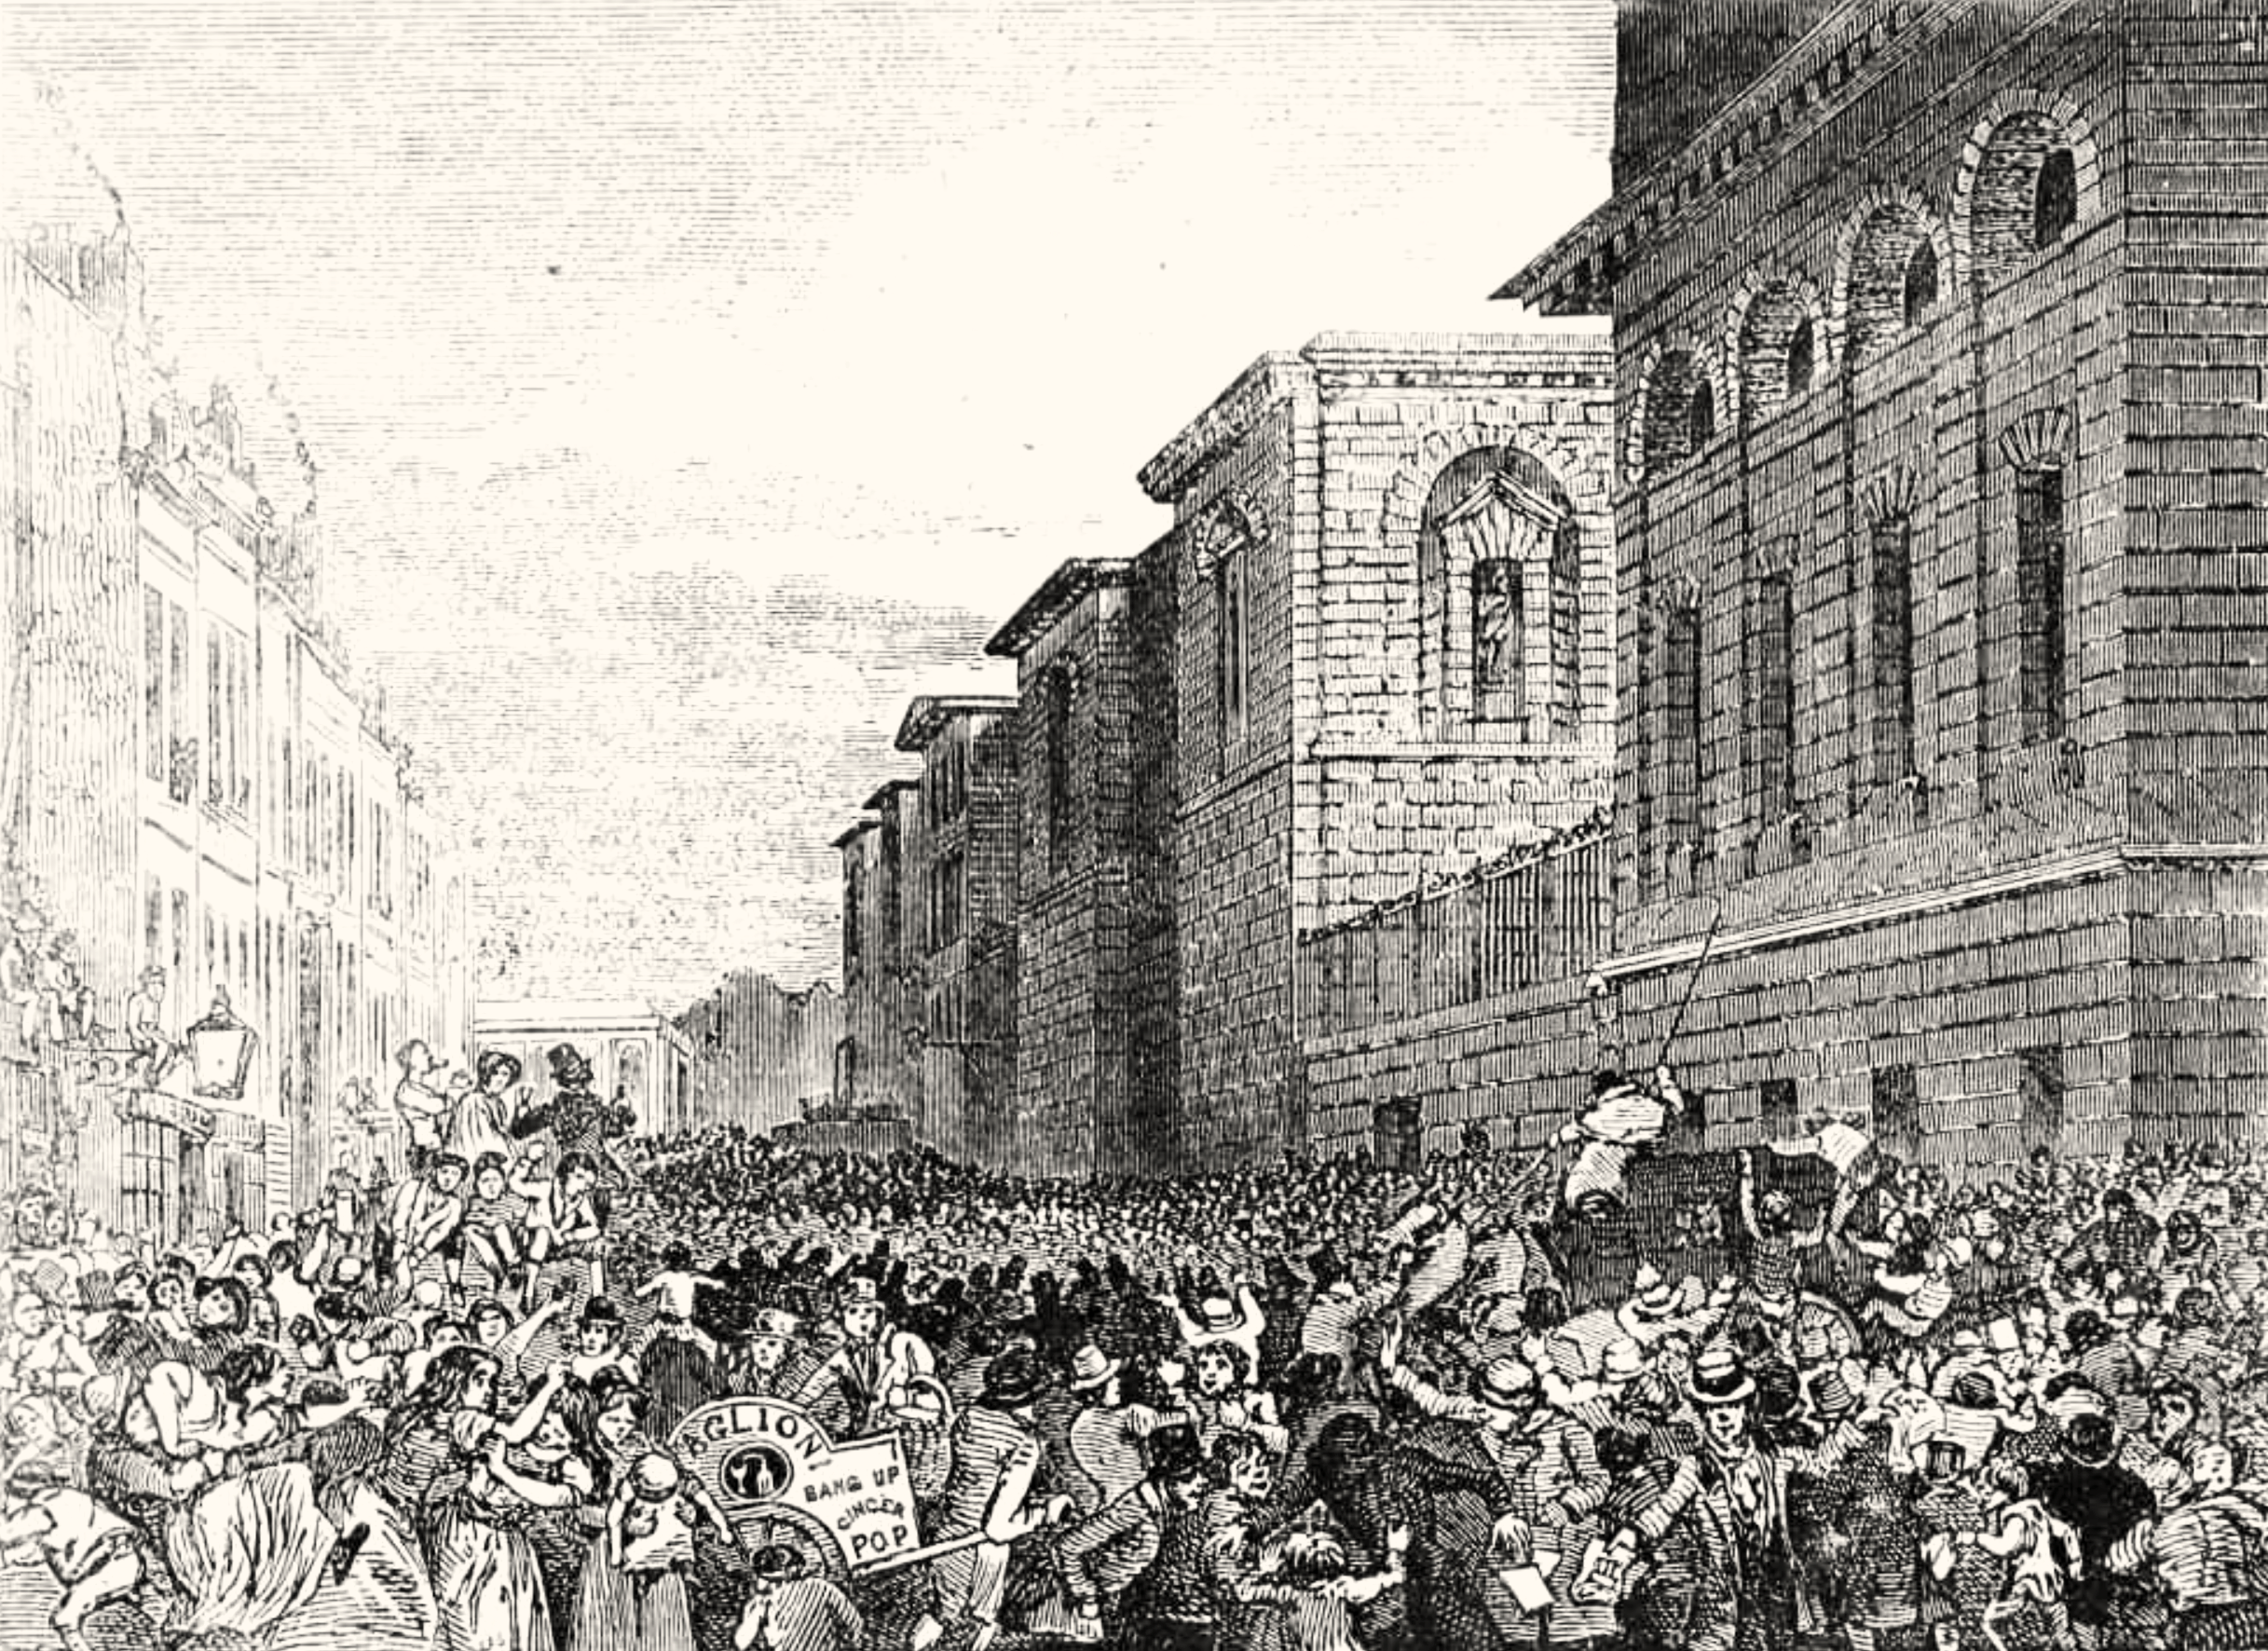 An execution outside Newgate, 19th century